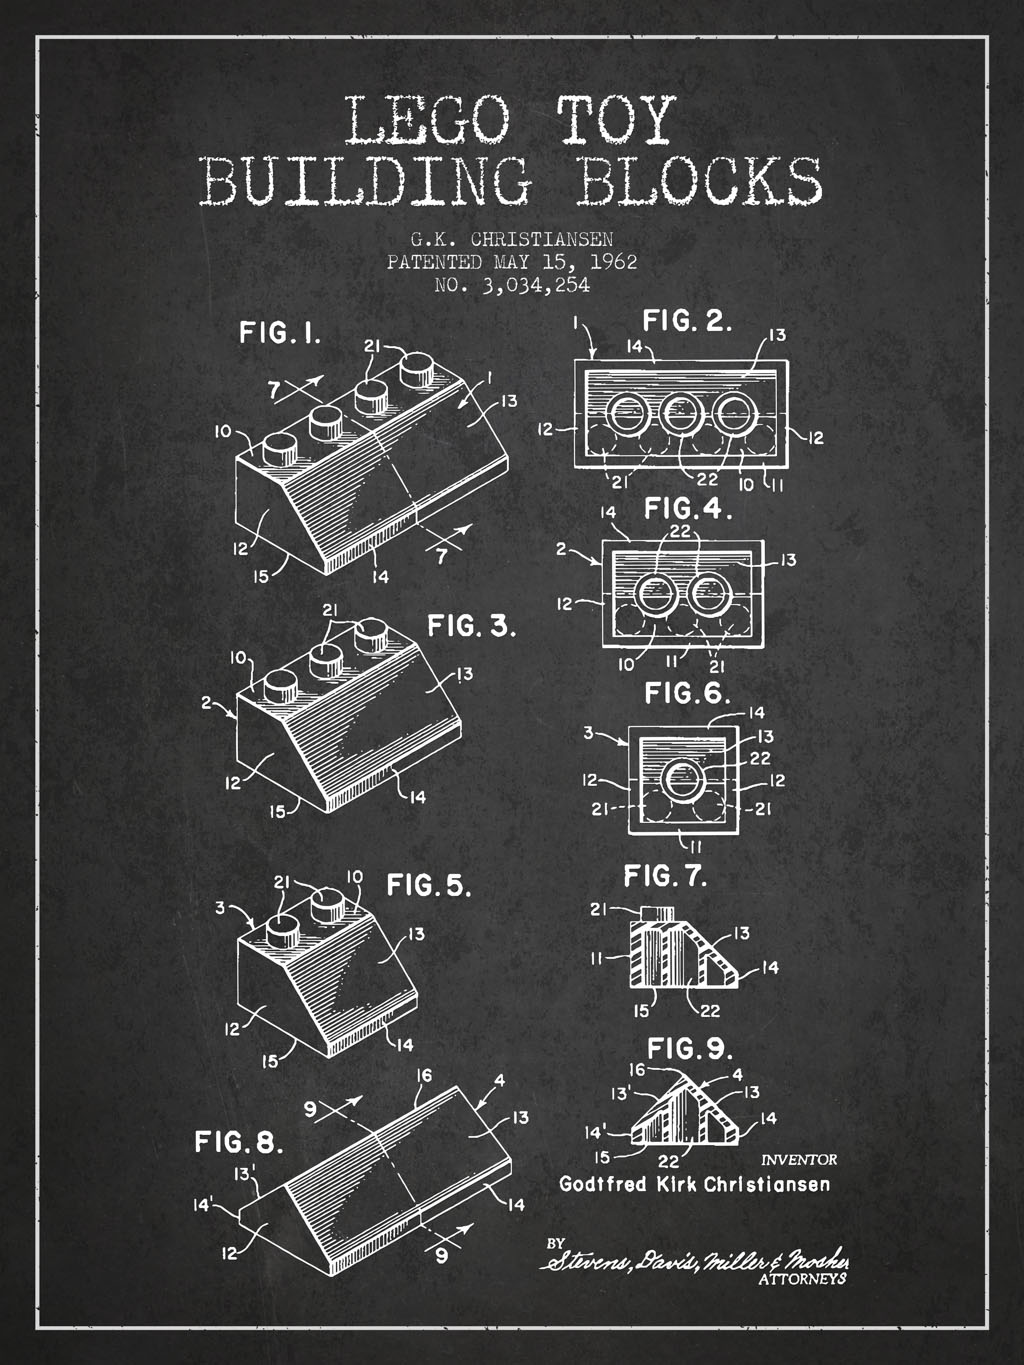 1962 Lego Toy Building Blocks Patent by www.patentswallart.com, https://www.flickr.com/photos/patentswallart/16881724632